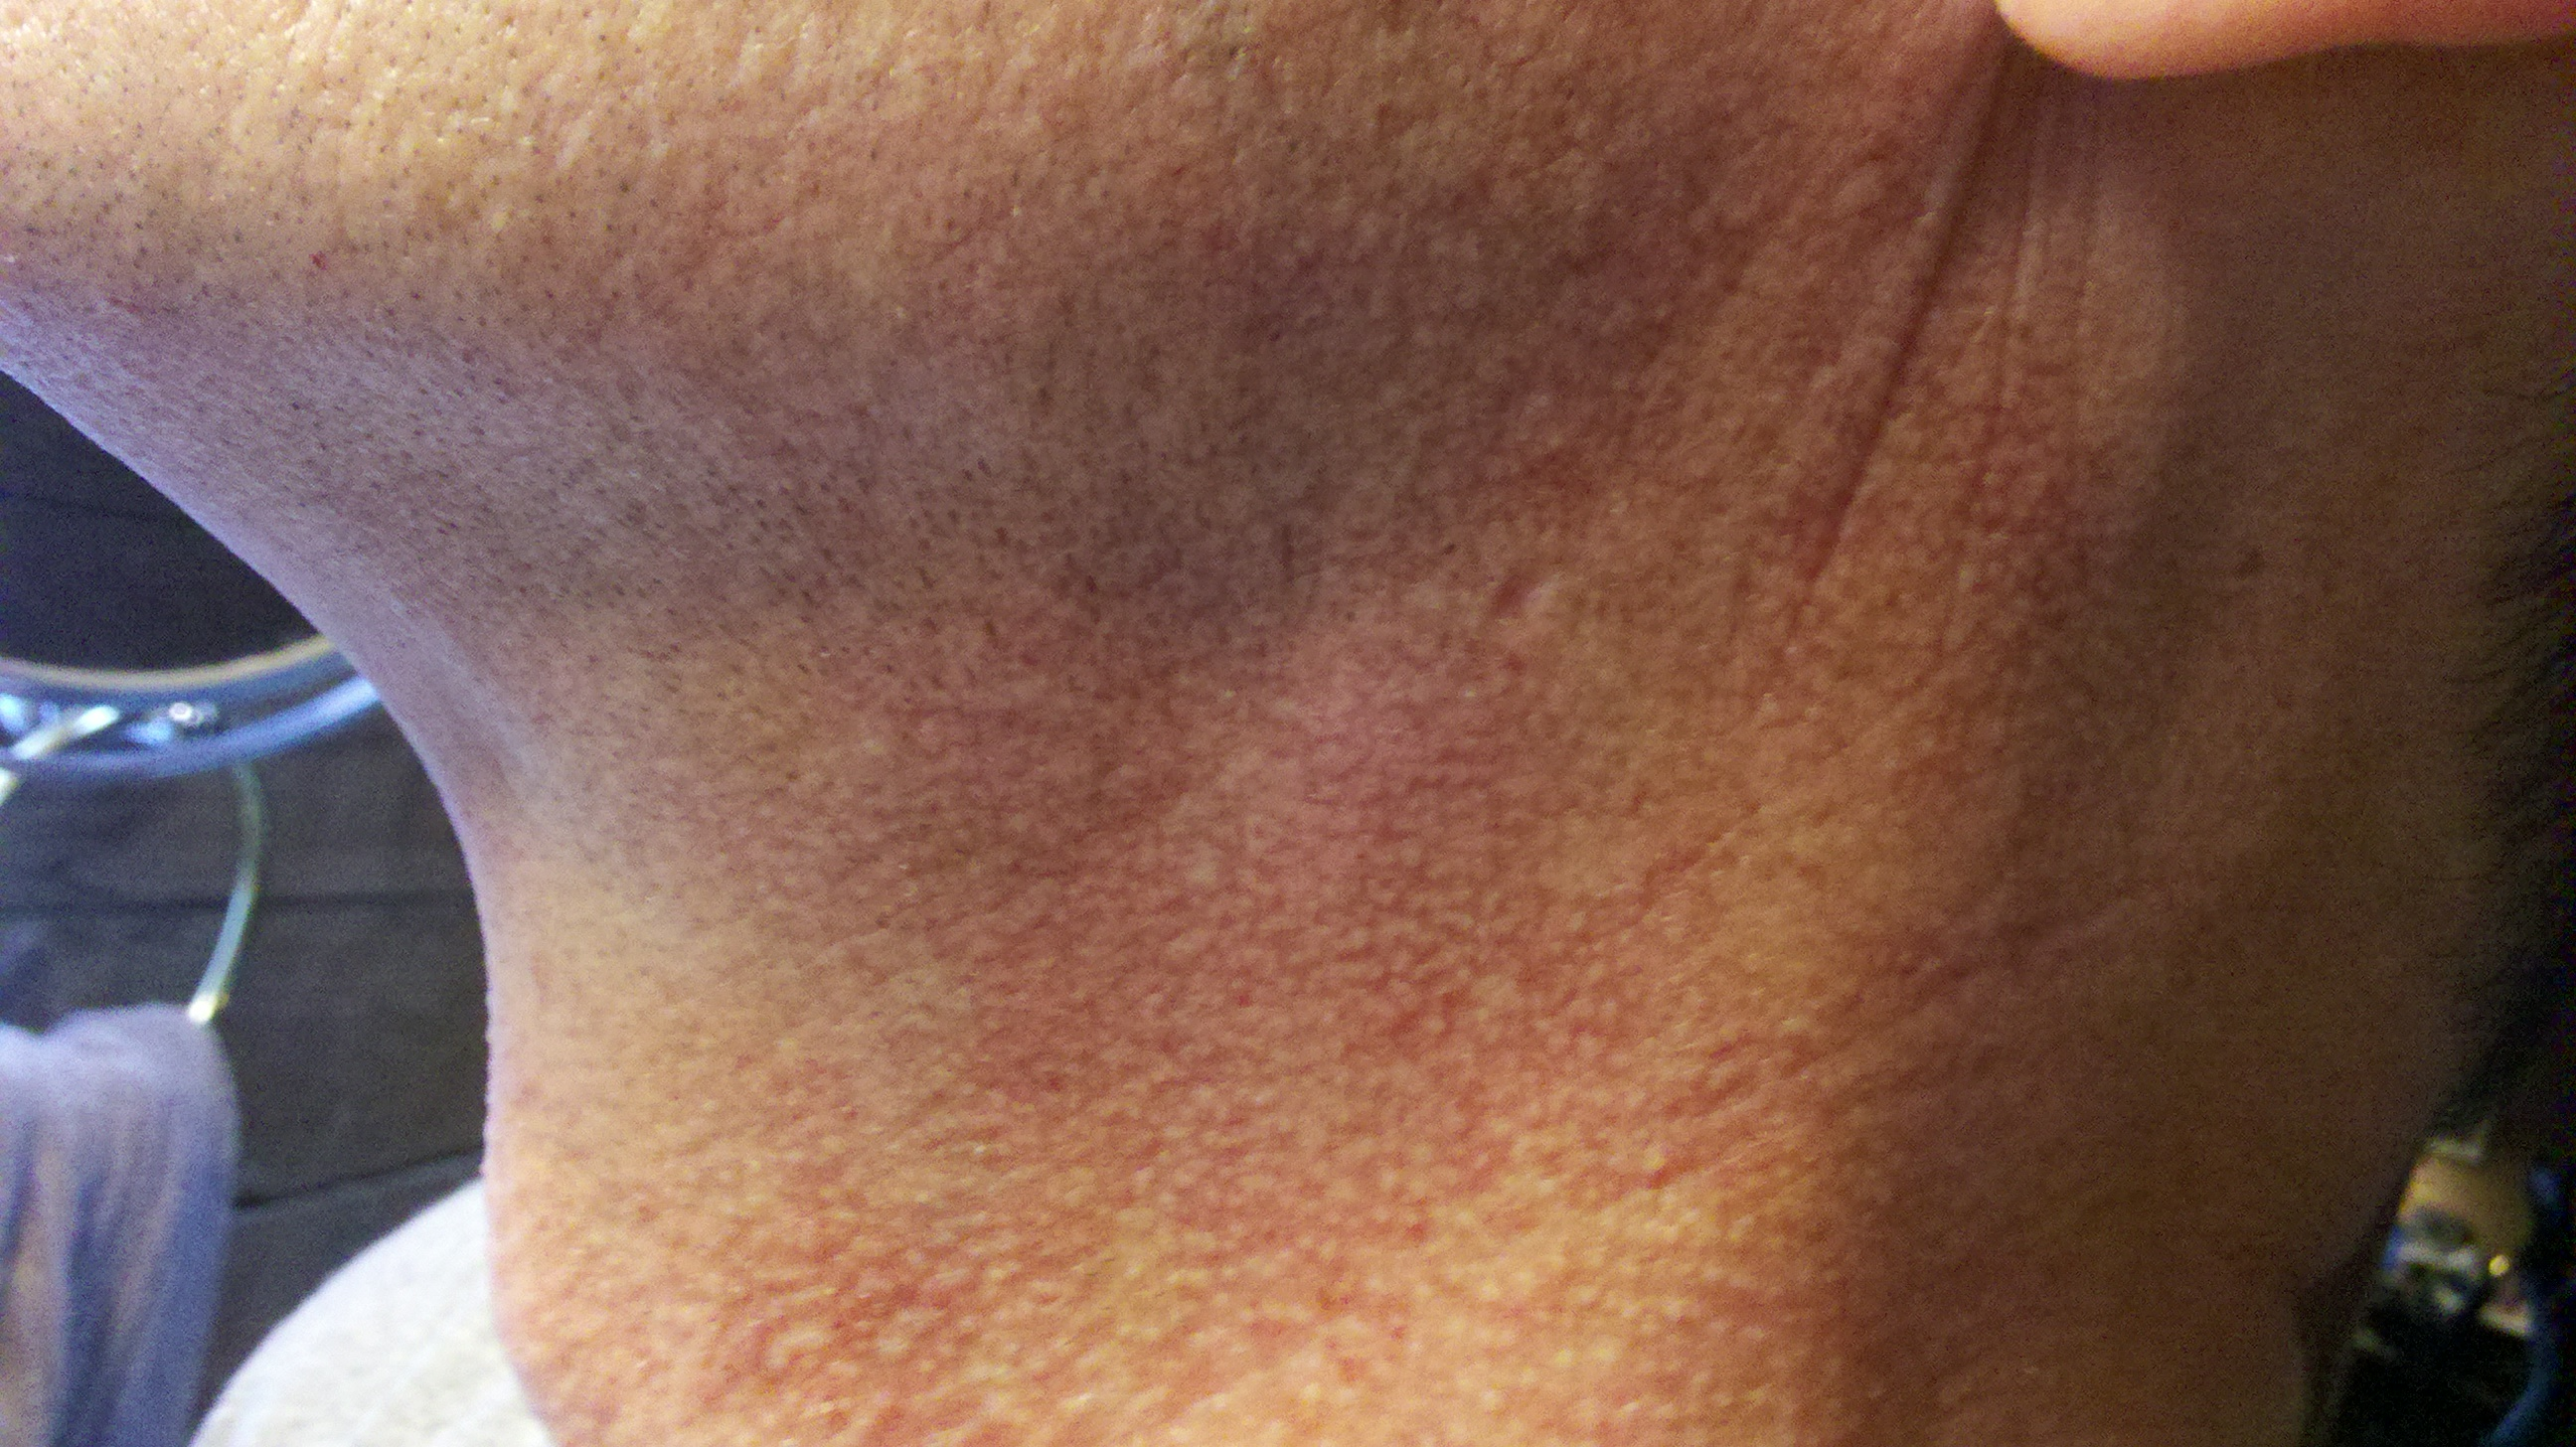 red rash around neck - MedHelp